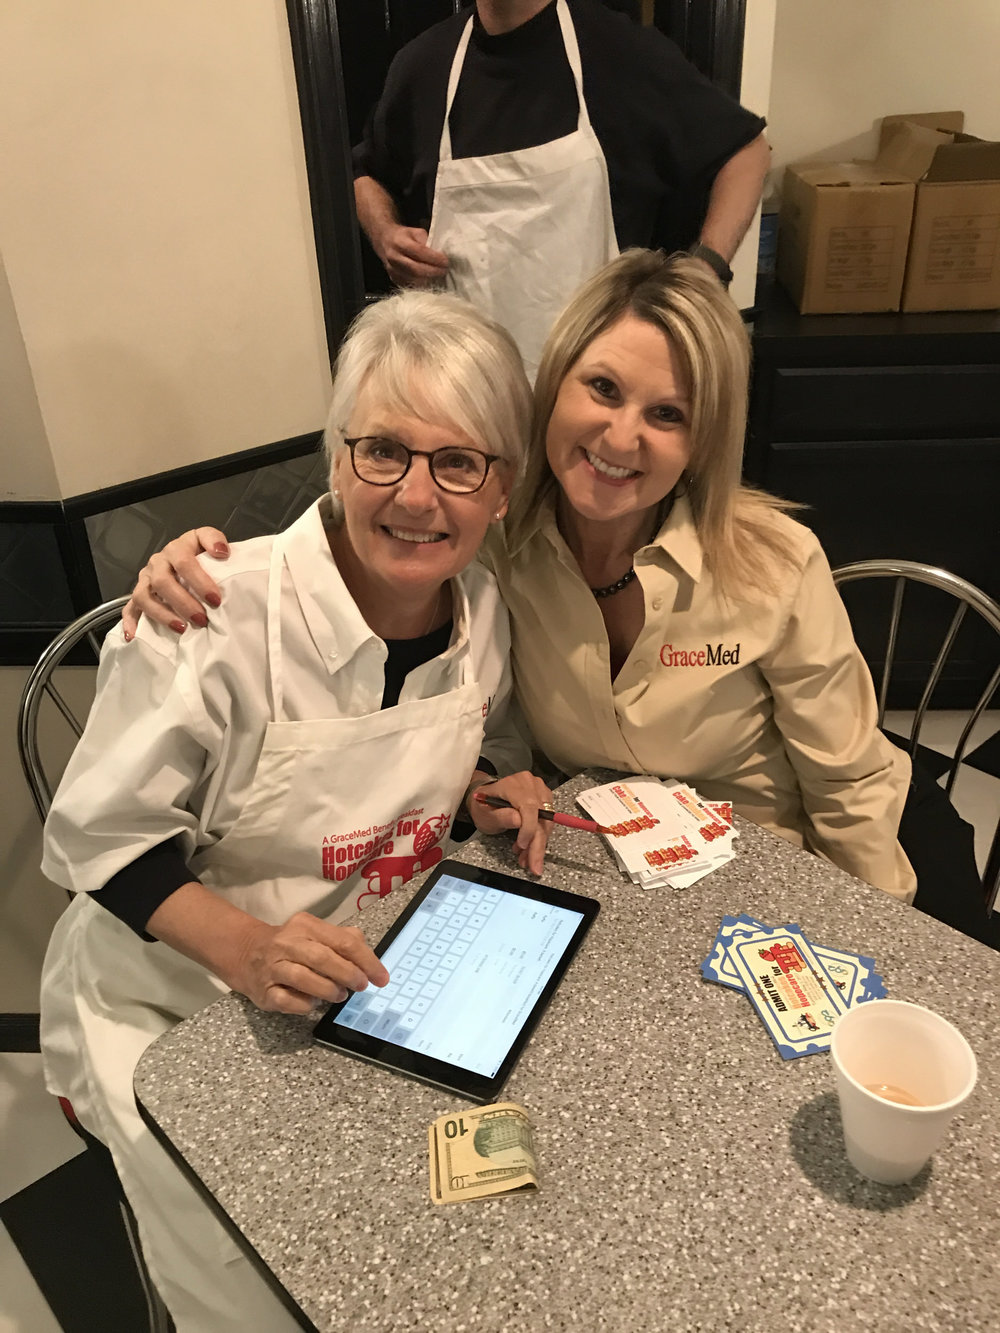 Debbie Sanford & Lesa Dreifort at the first annual Hotcakes for Hopecare